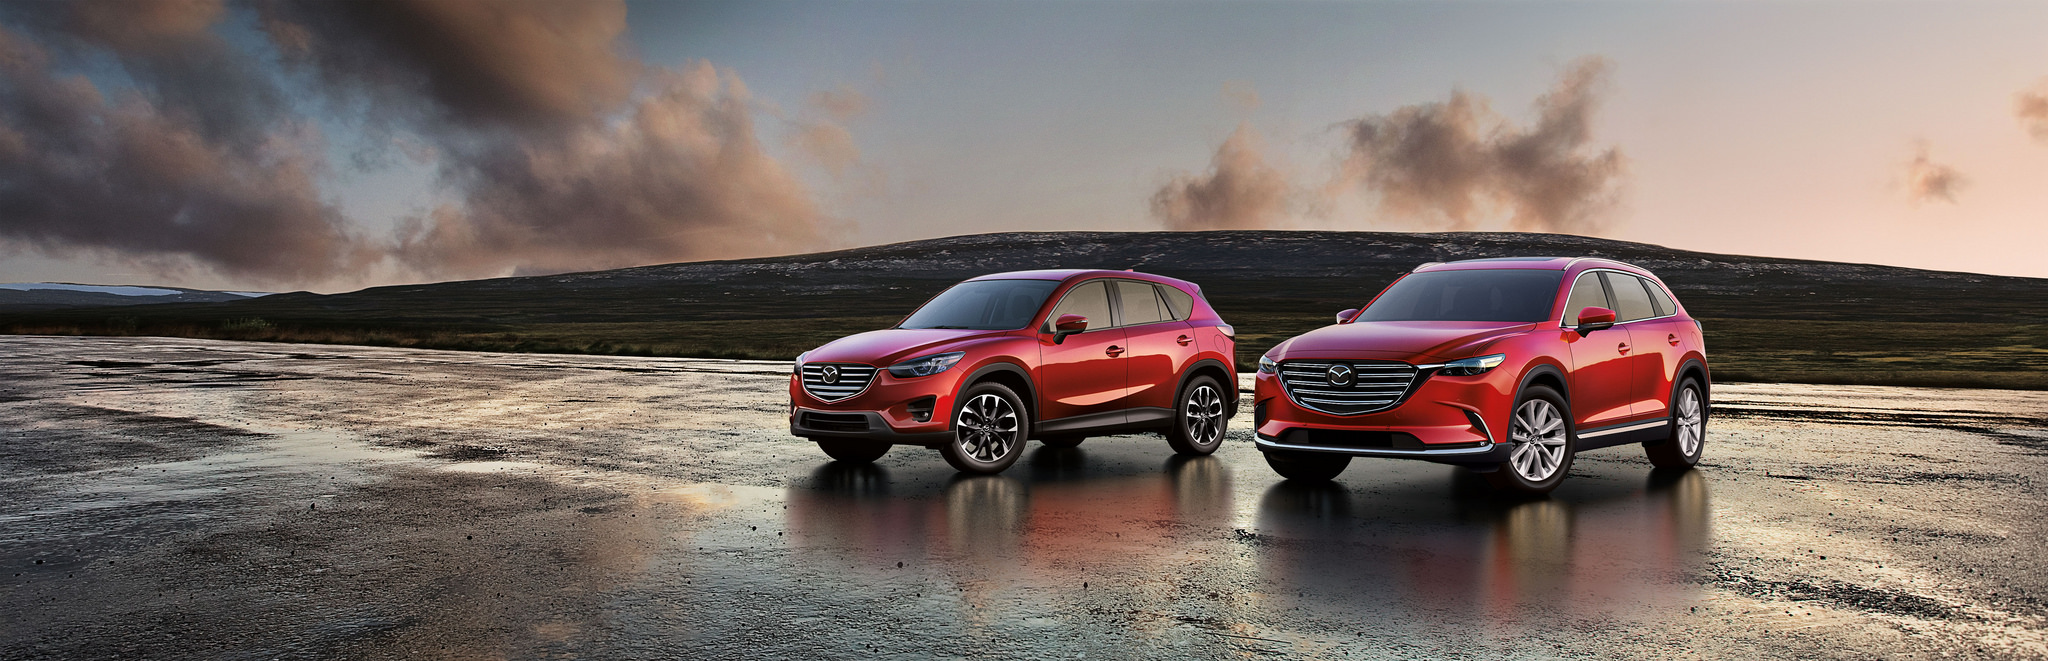 2018 Mazda CX-5 and CX-9 updates